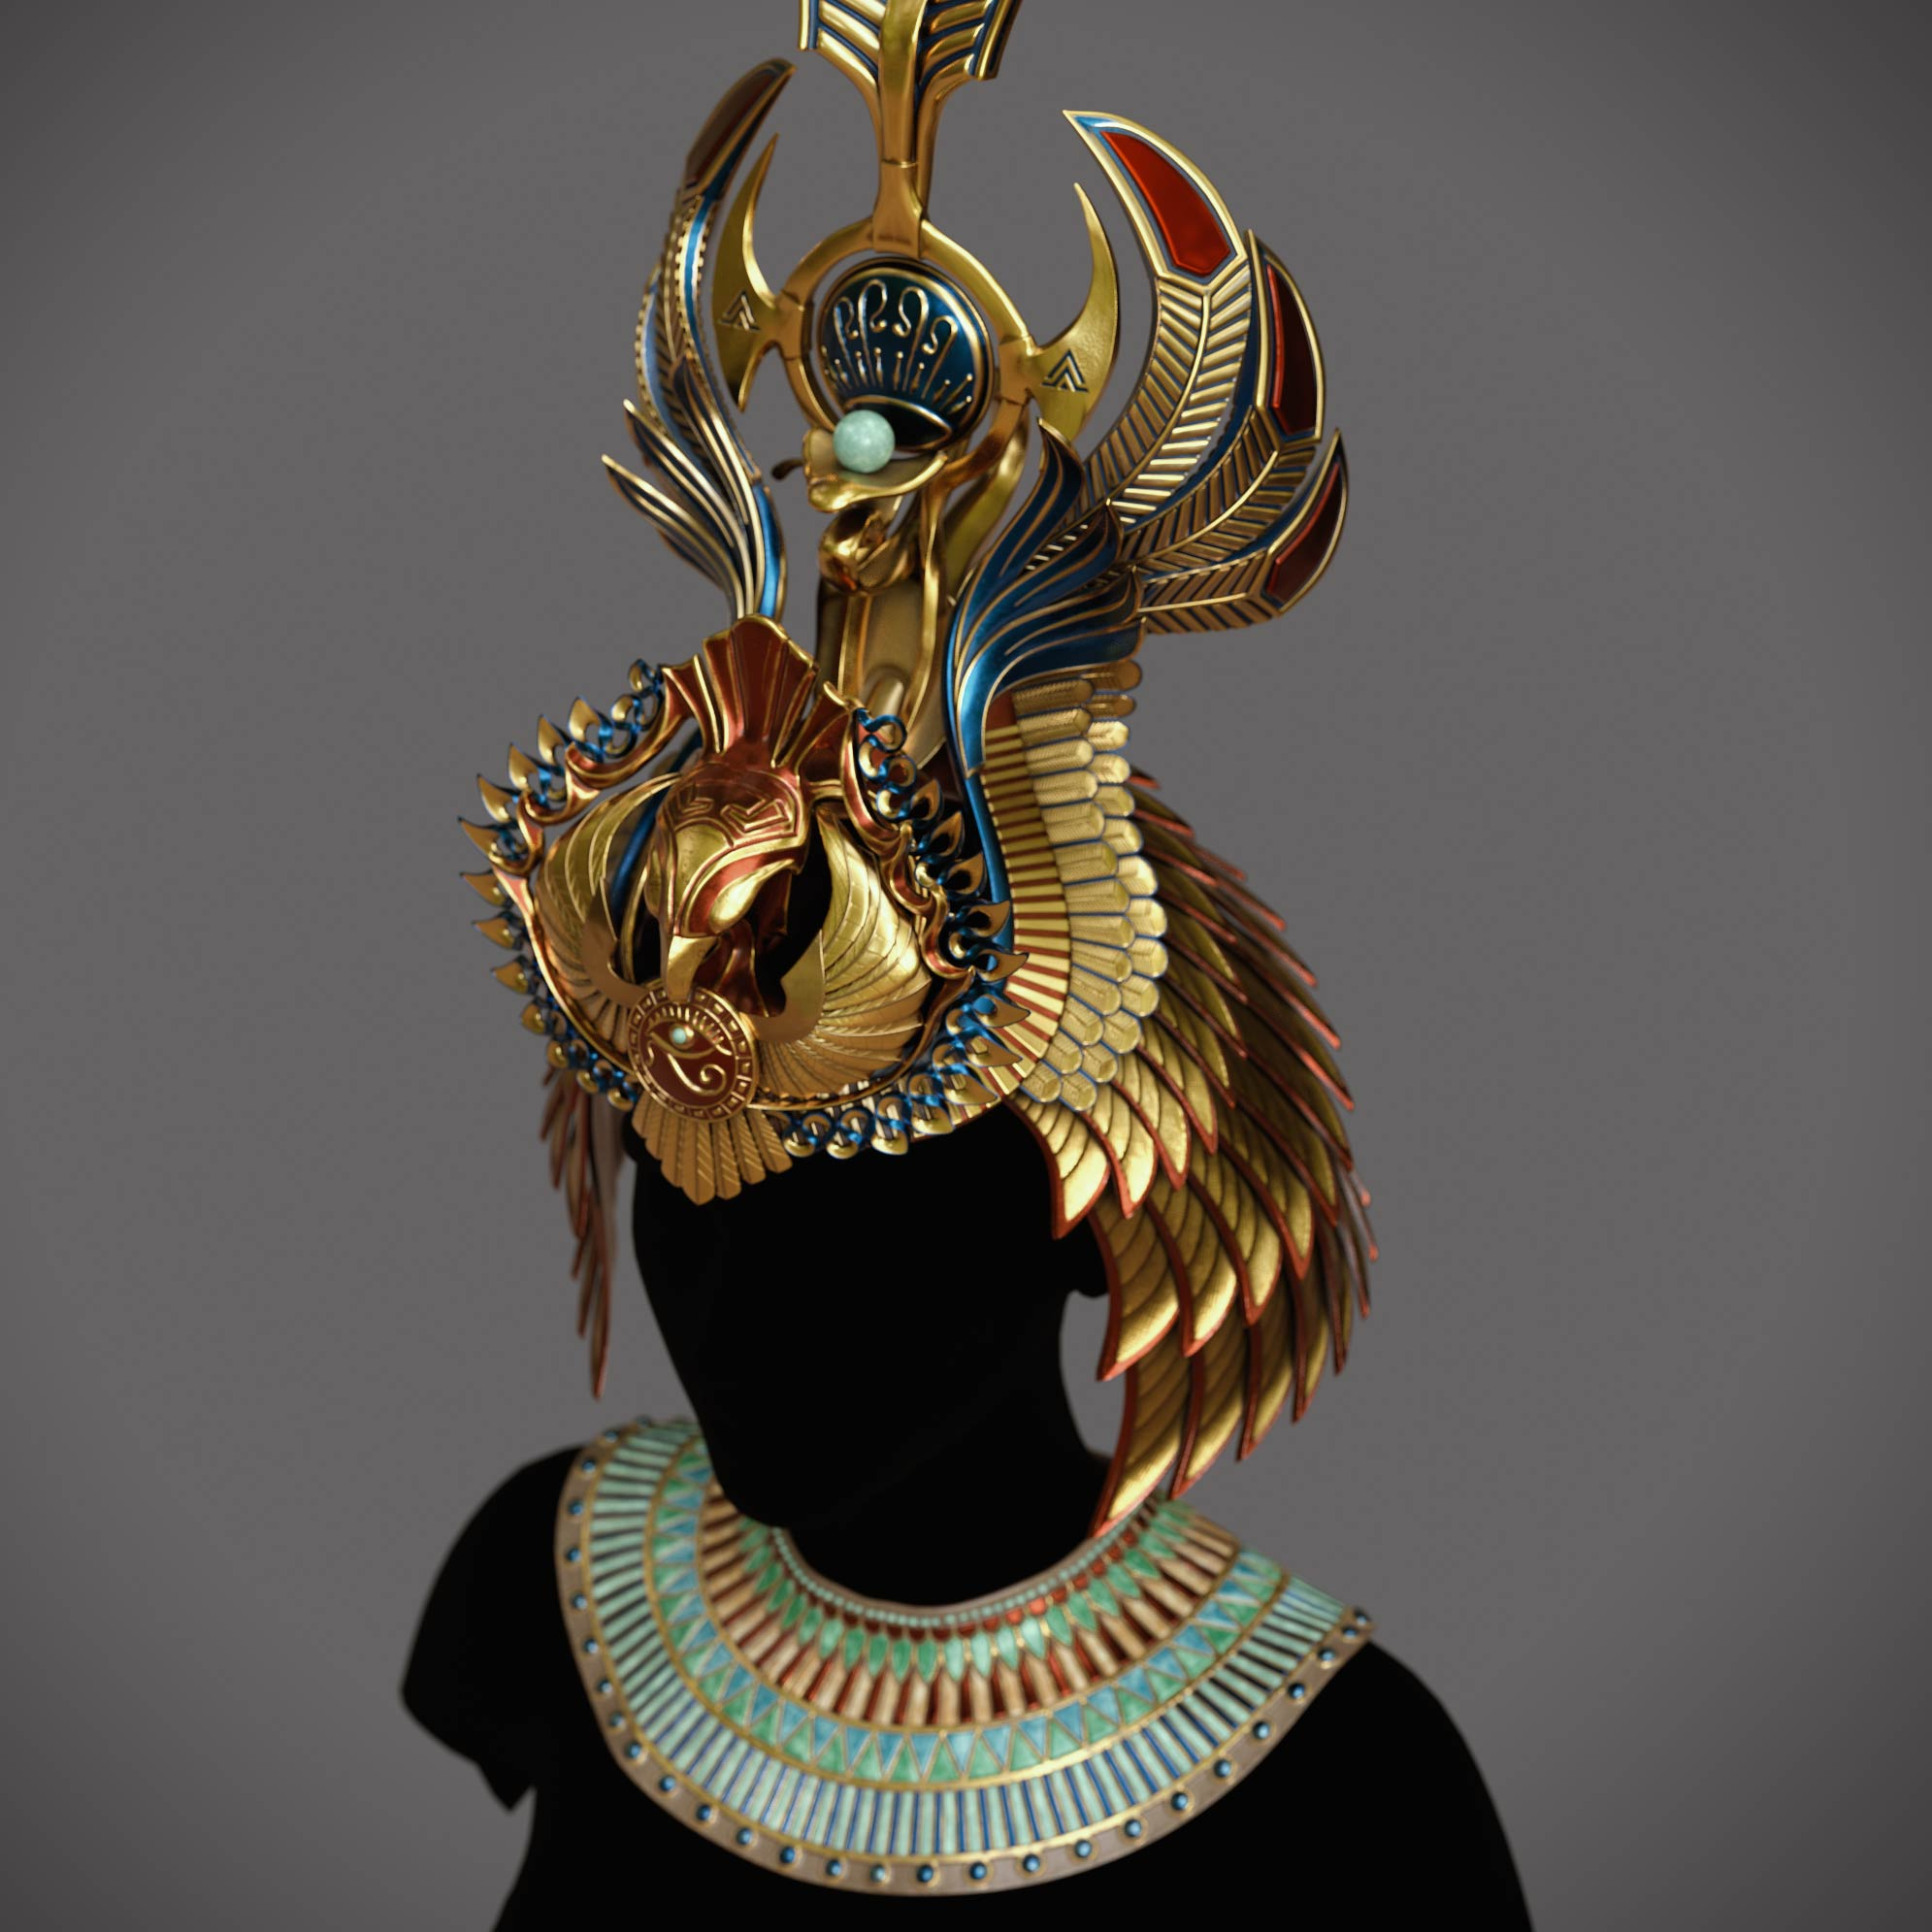 3d_design_concept_zbrush-modeling_sculpting_texturing_assets Egyptian queen crown